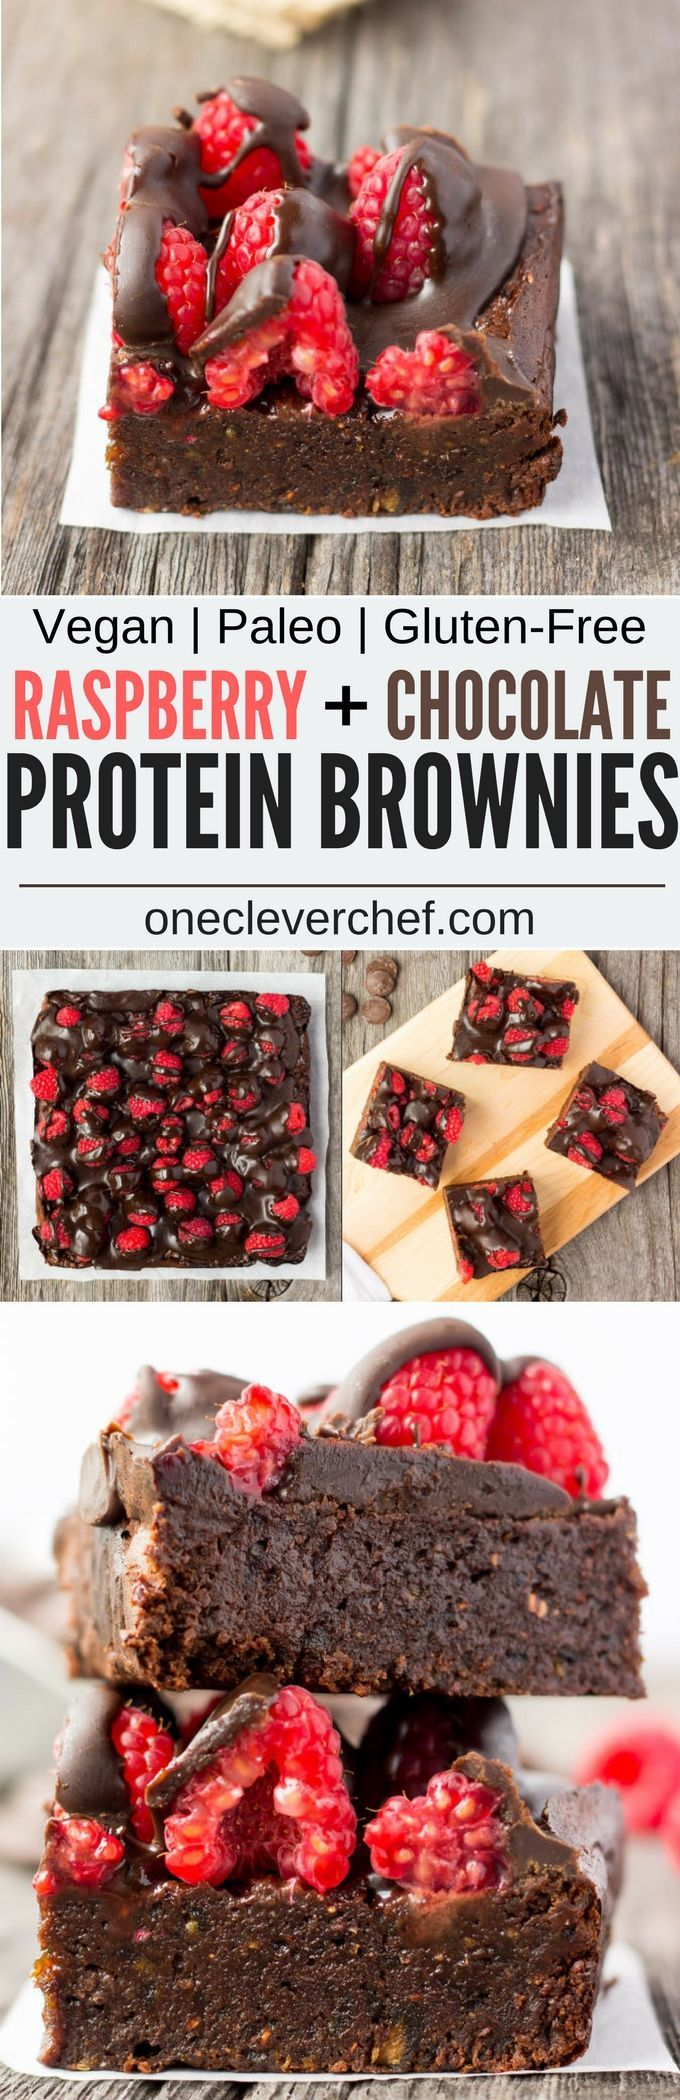 These healthy Raspberry and Chocolate Protein Browniesare deliciously moist and extra rich. Naturally sweetened, this melt in your mouth protein snack is the perfect post-workout treat. Made with dates and almond flour, this guilt-free, decadent dessert is also paleo, vegan, gluten-free, dairy-free, egg-free and flourless.   onecleverchef.com